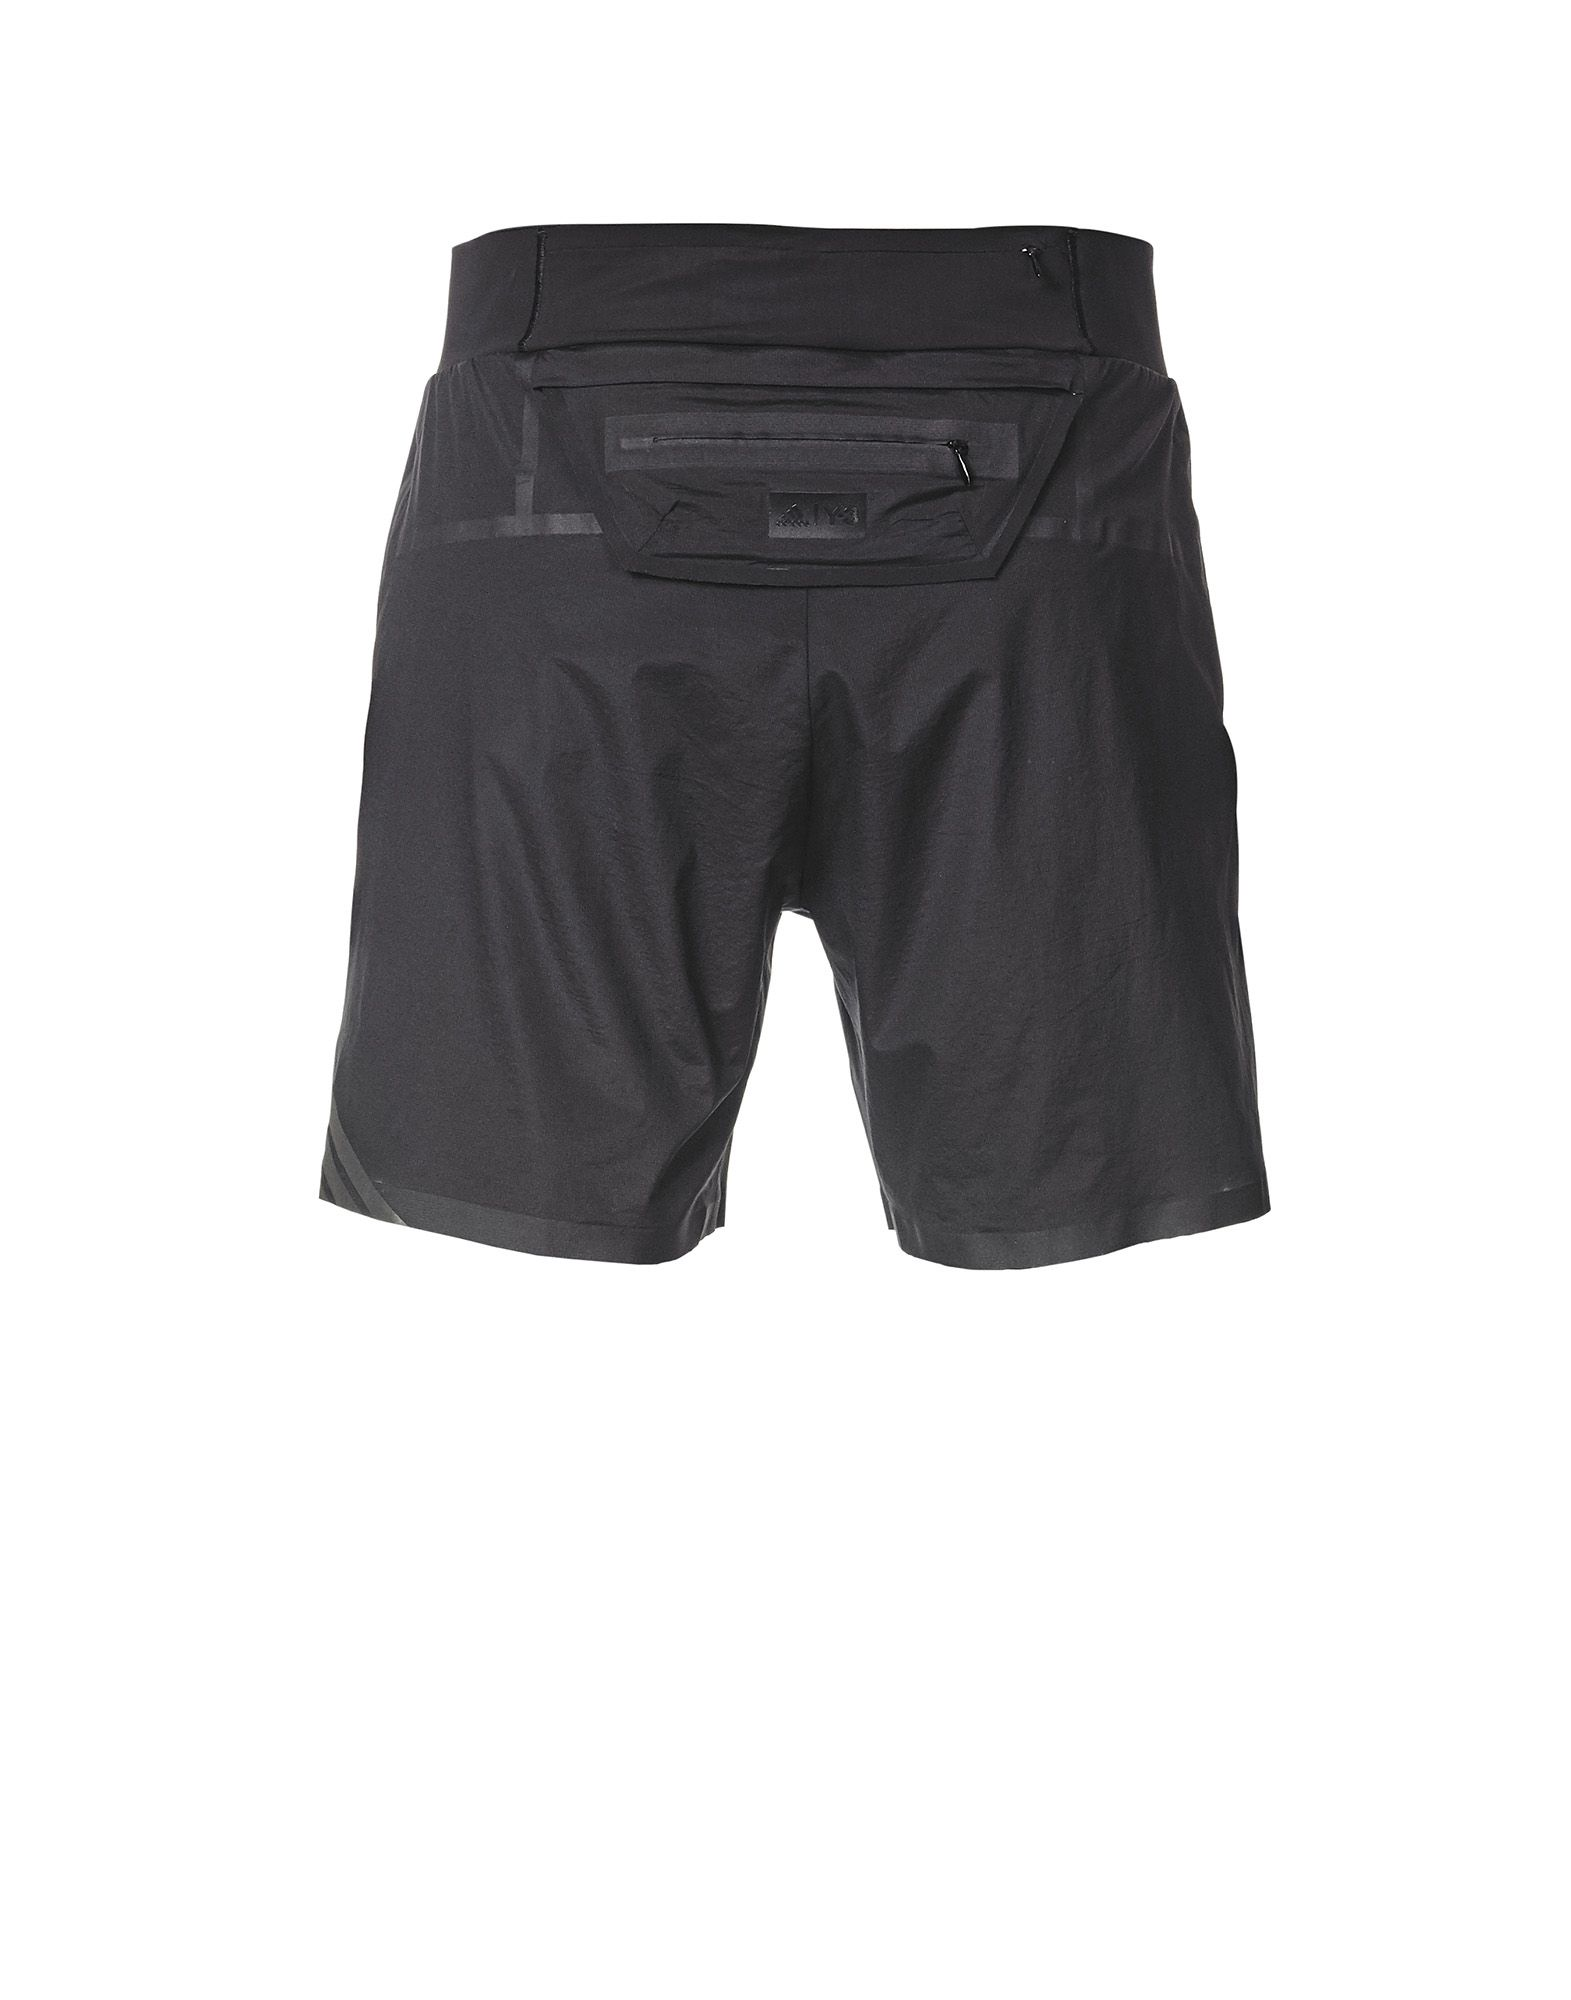 adidas shorts with pockets